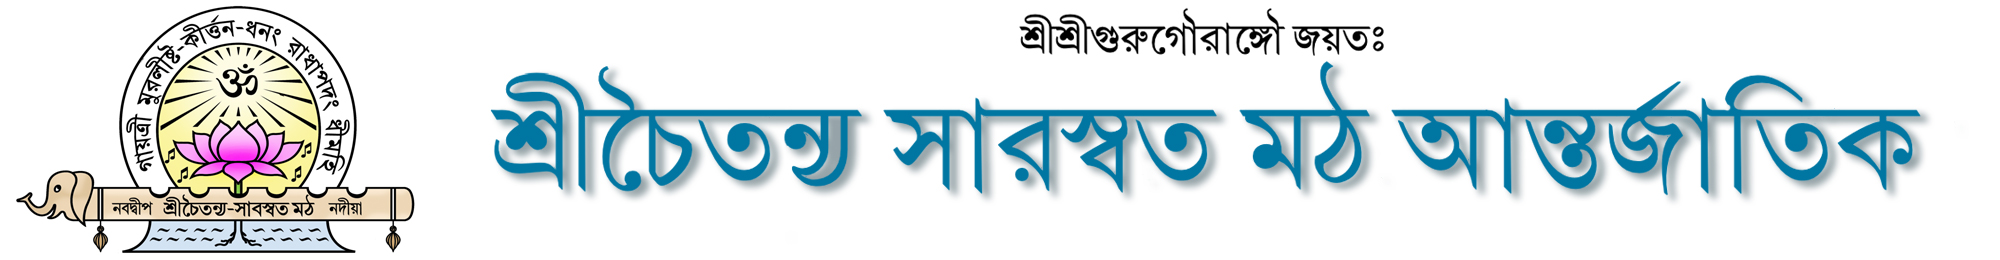 Sri Chaitanya Saraswat Math International - Bengali